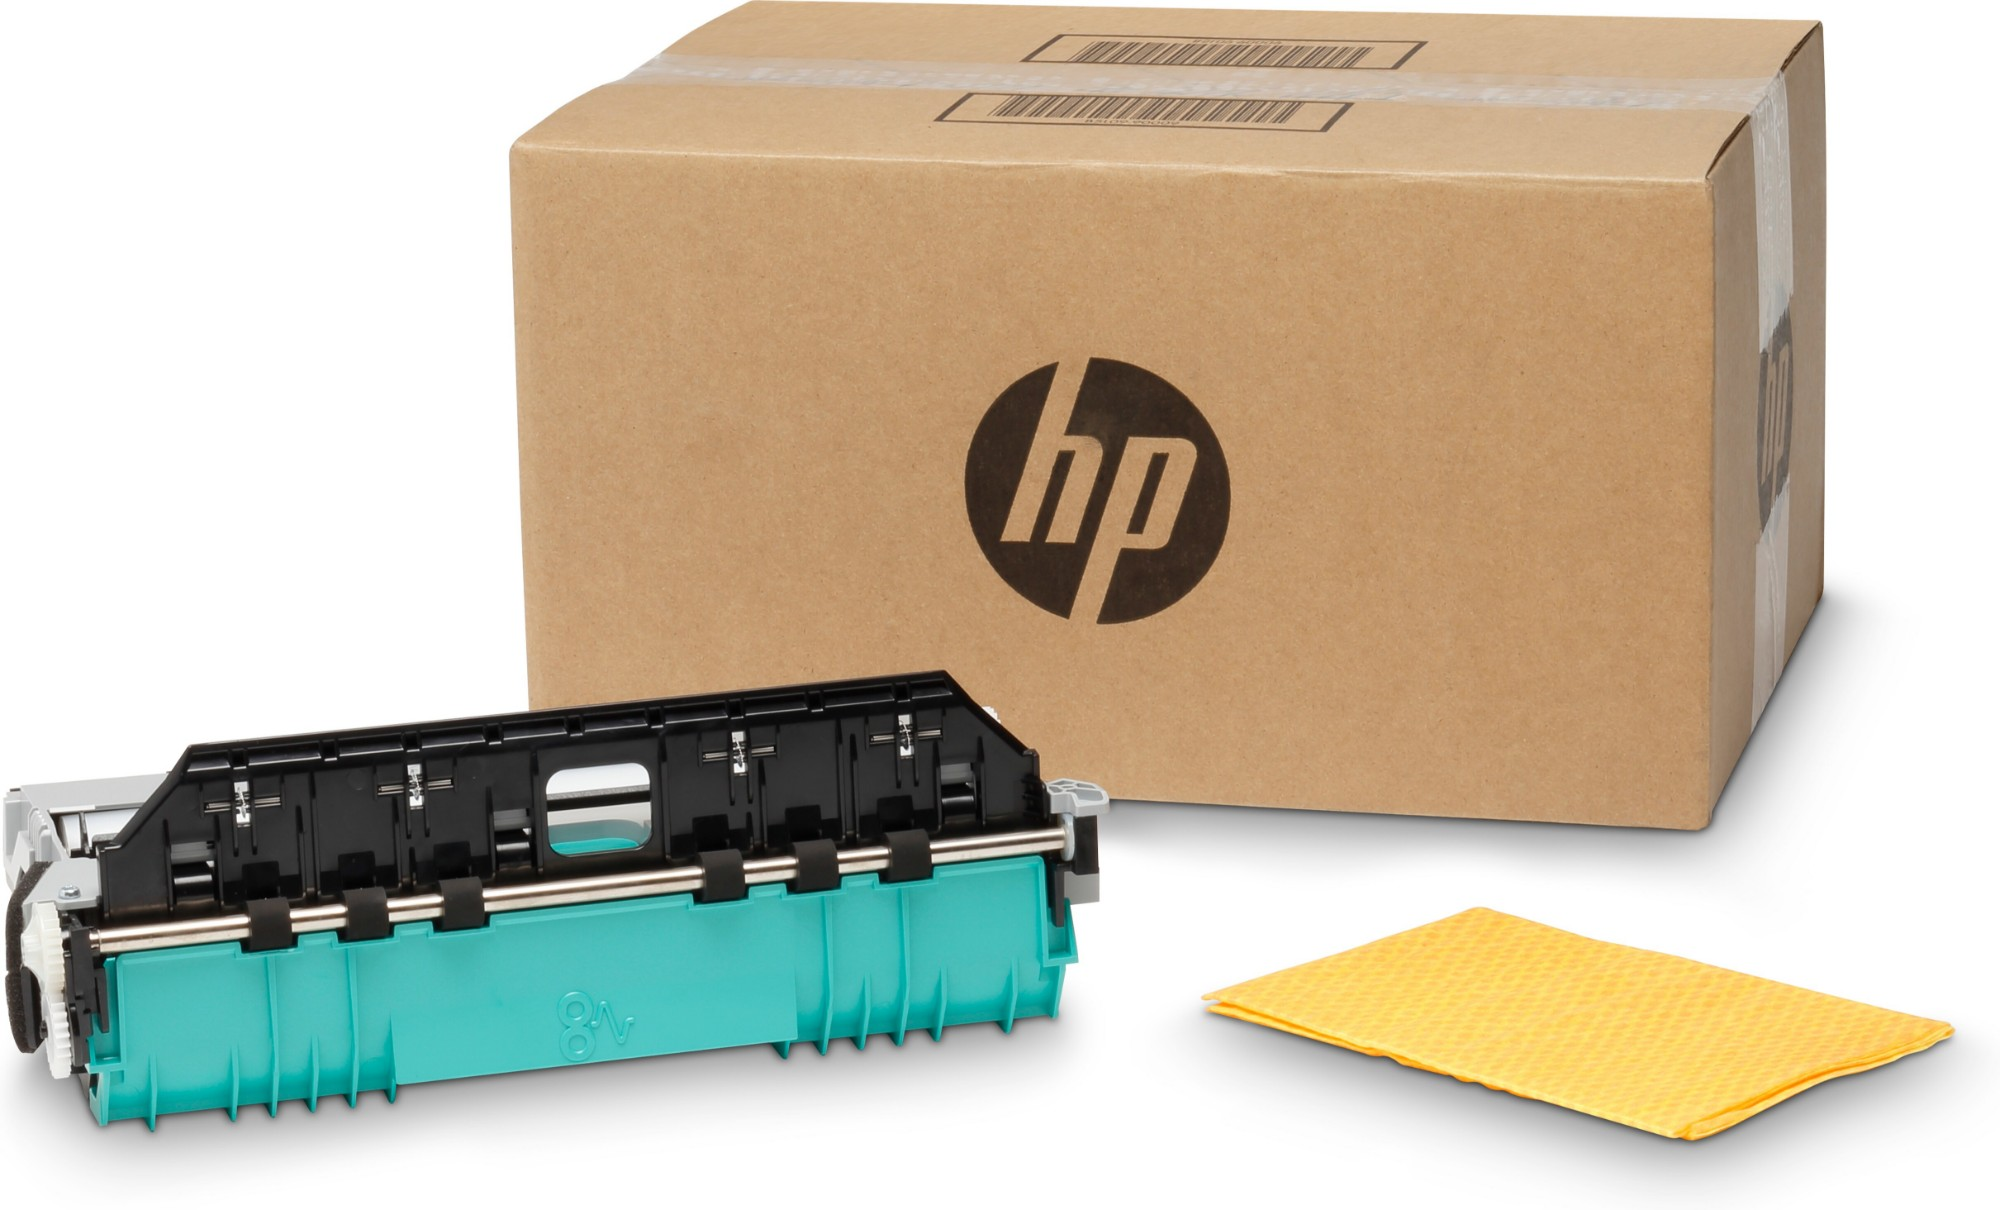 HP Officejet Enterprise inktverzamelunit